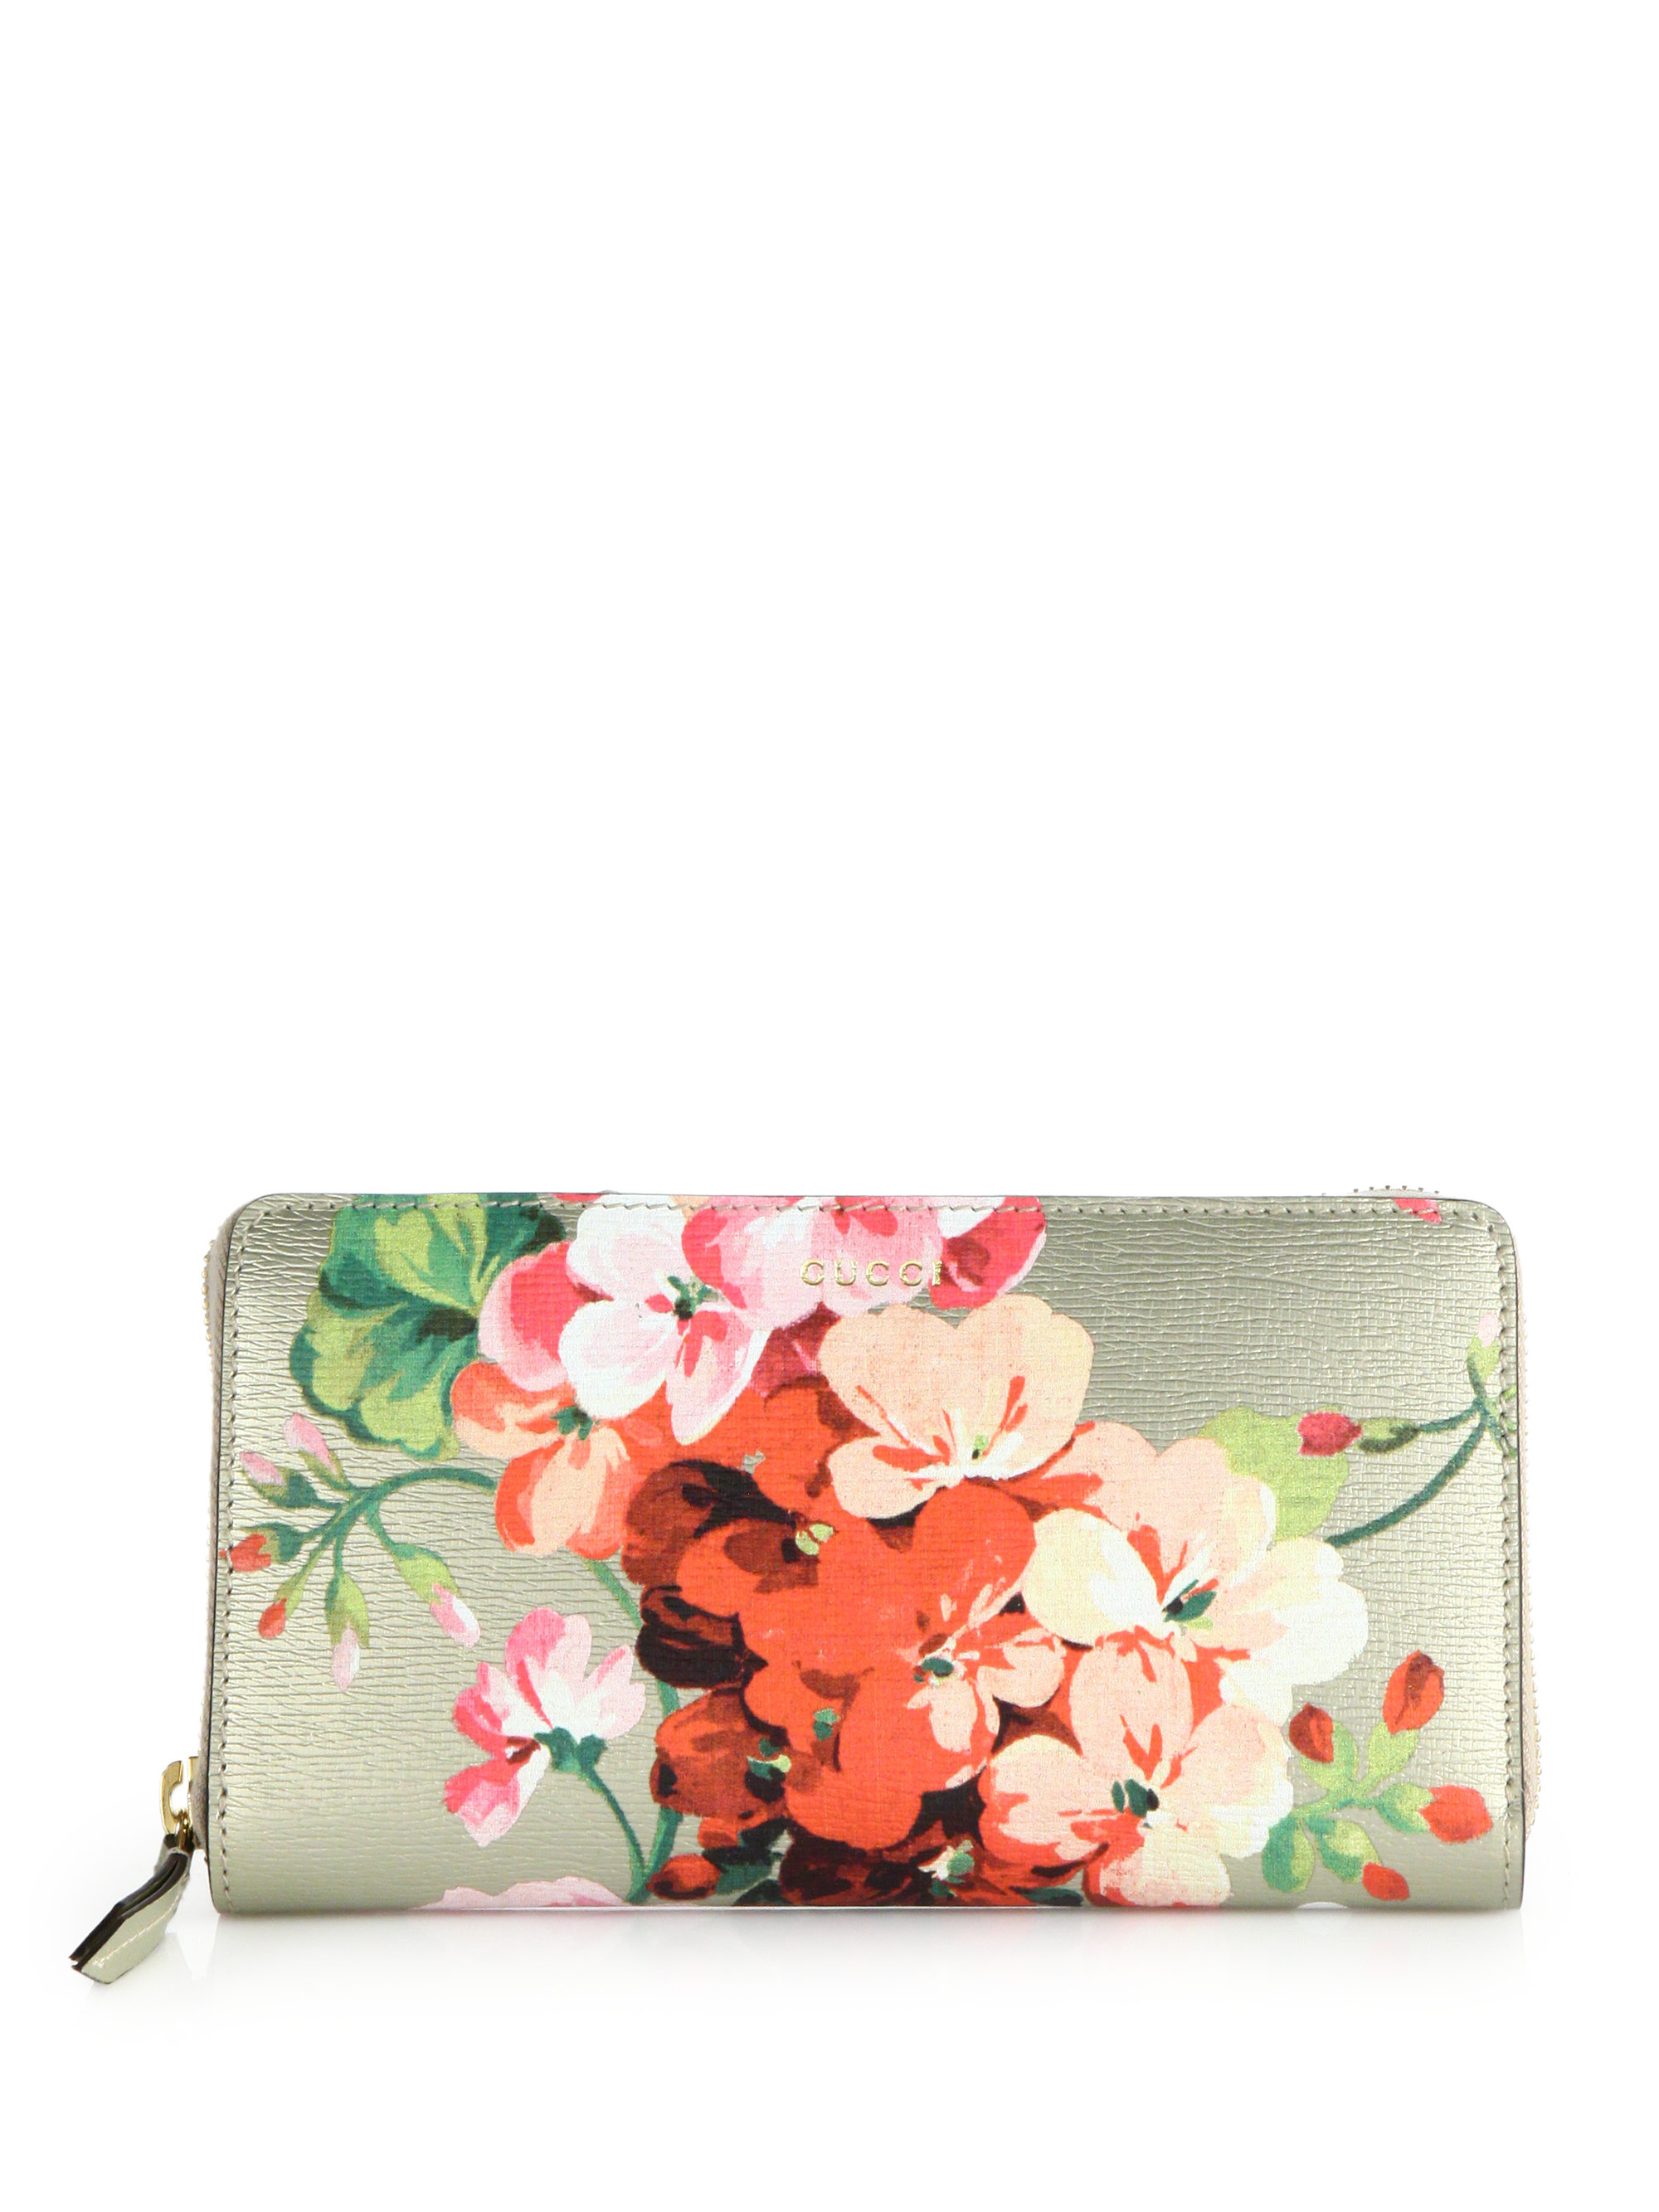 b6de1fcf0cc39b Gucci Shanghai Blooms-print Zip-around Wallet in Metallic - Lyst